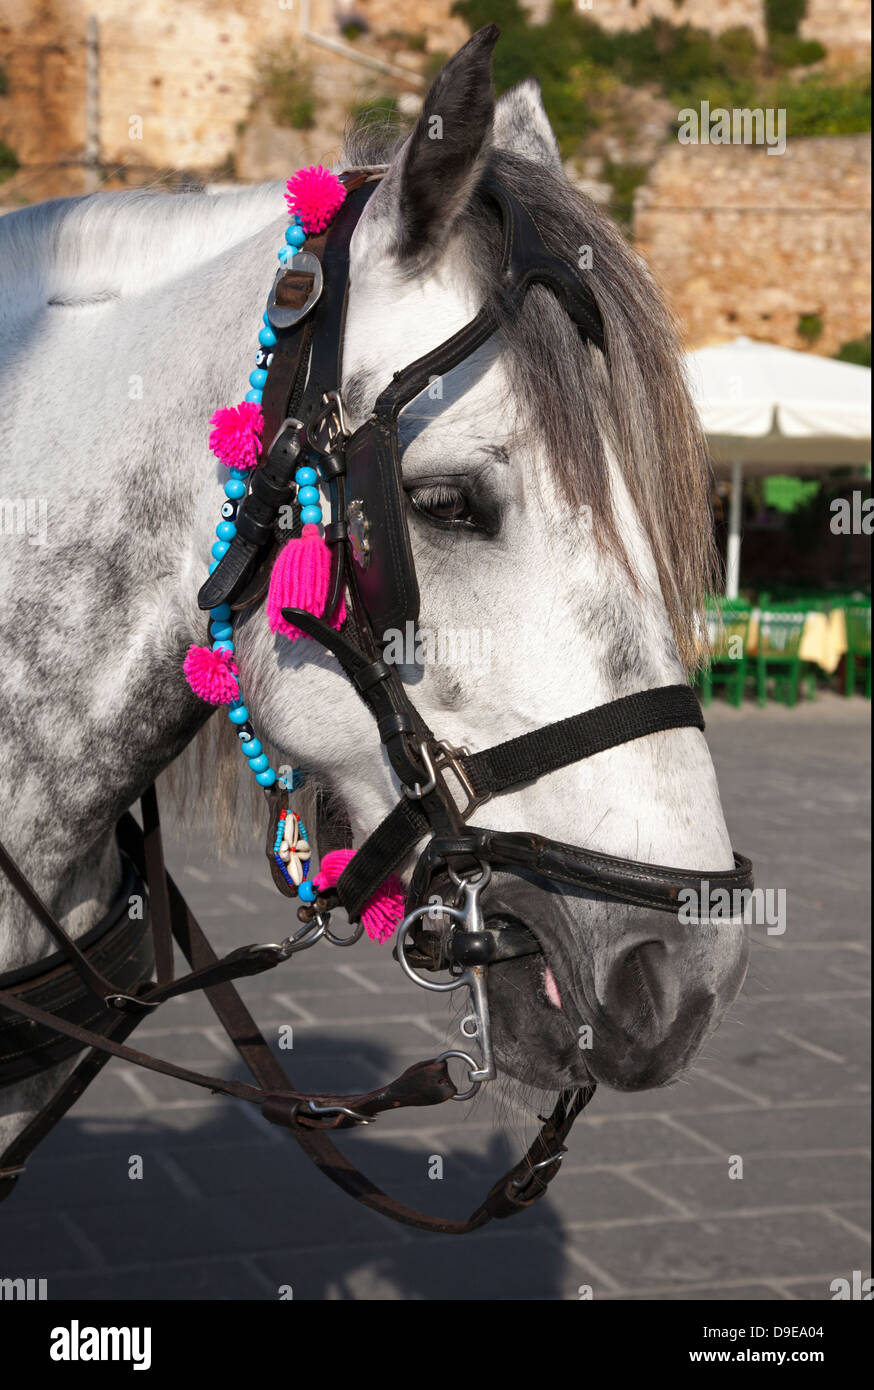 Grey horse in old town Chania - Stock Image